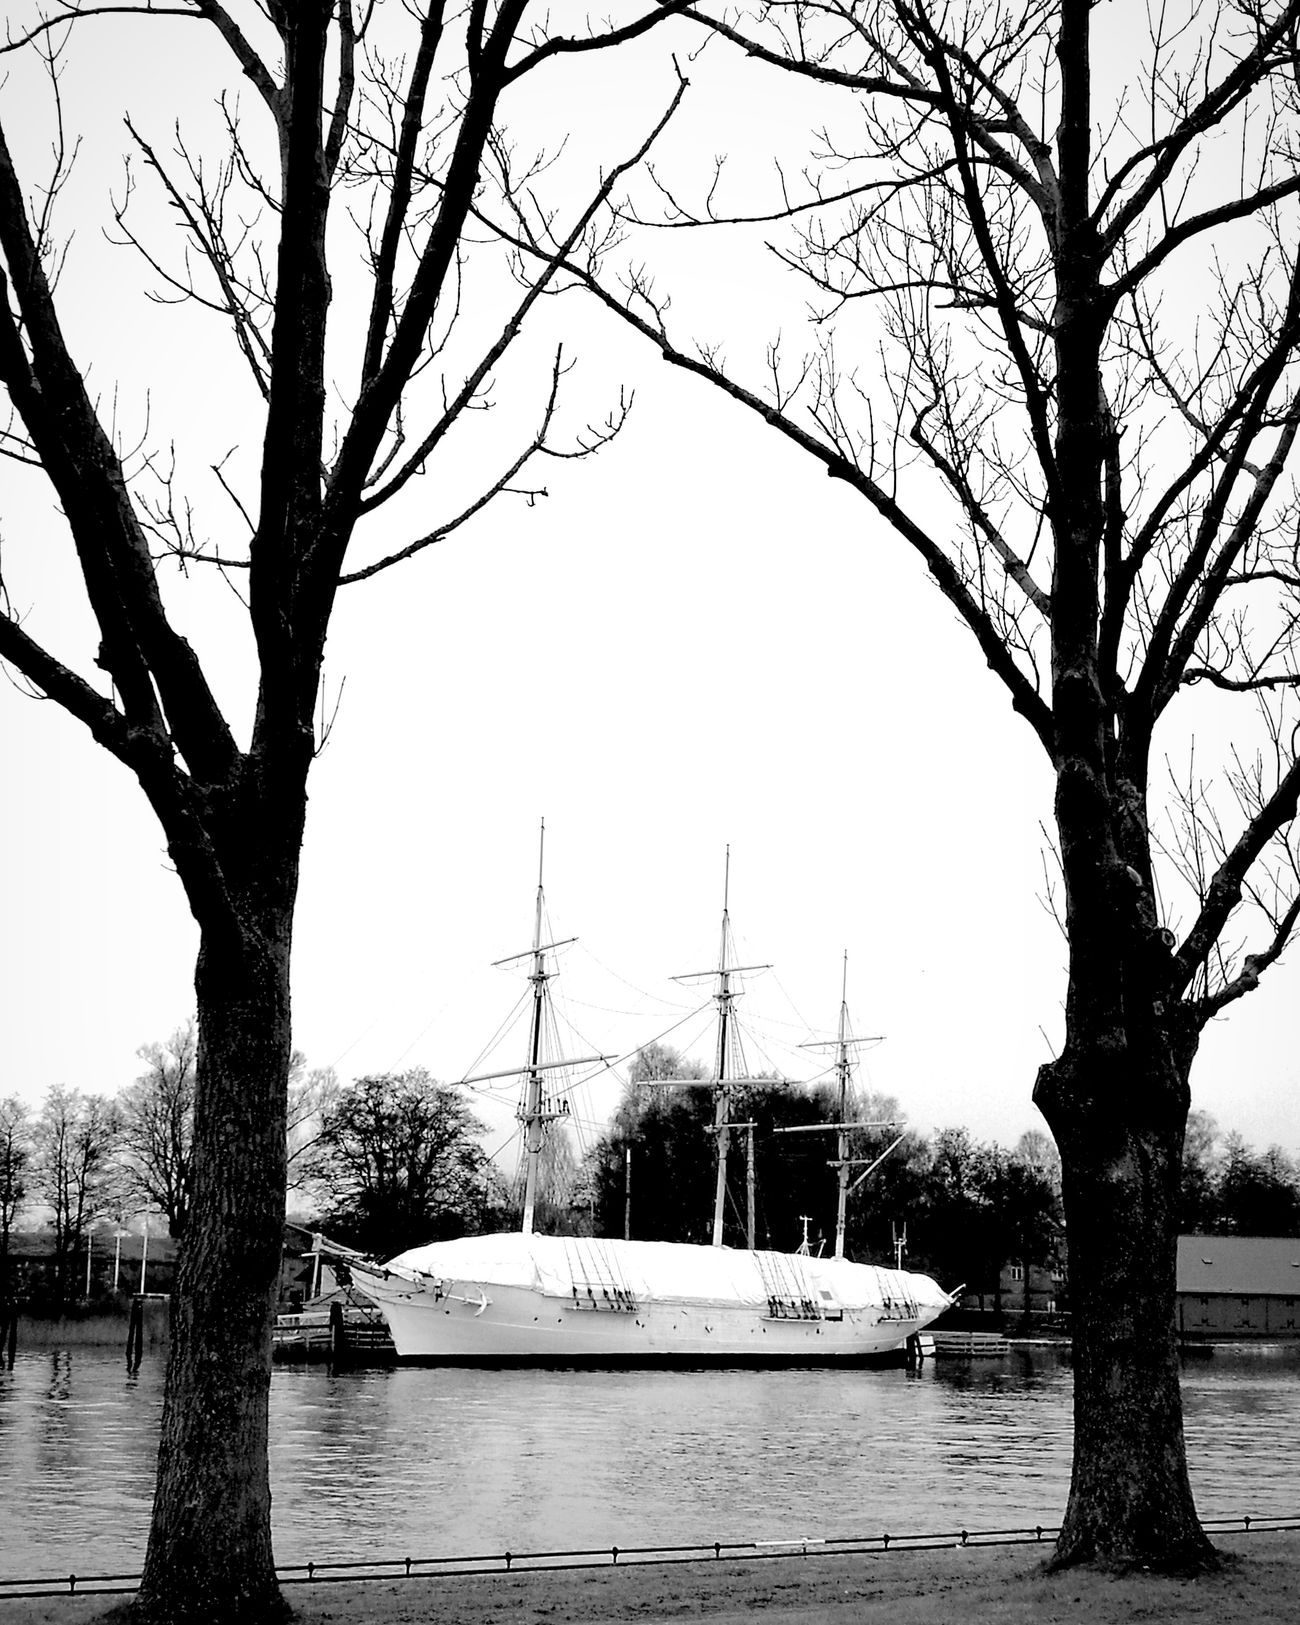 Sleeping beauty... Tree Water Nautical Vessel Tranquility Outdoors Sky Yachting Sailboat No People Travel Destinations Day Beauty In Nature Leisure Activity Life In Motion Lifeontheroad Peace And Quiet Relaxation Peaceful View Branch Black & White Norway🇳🇴